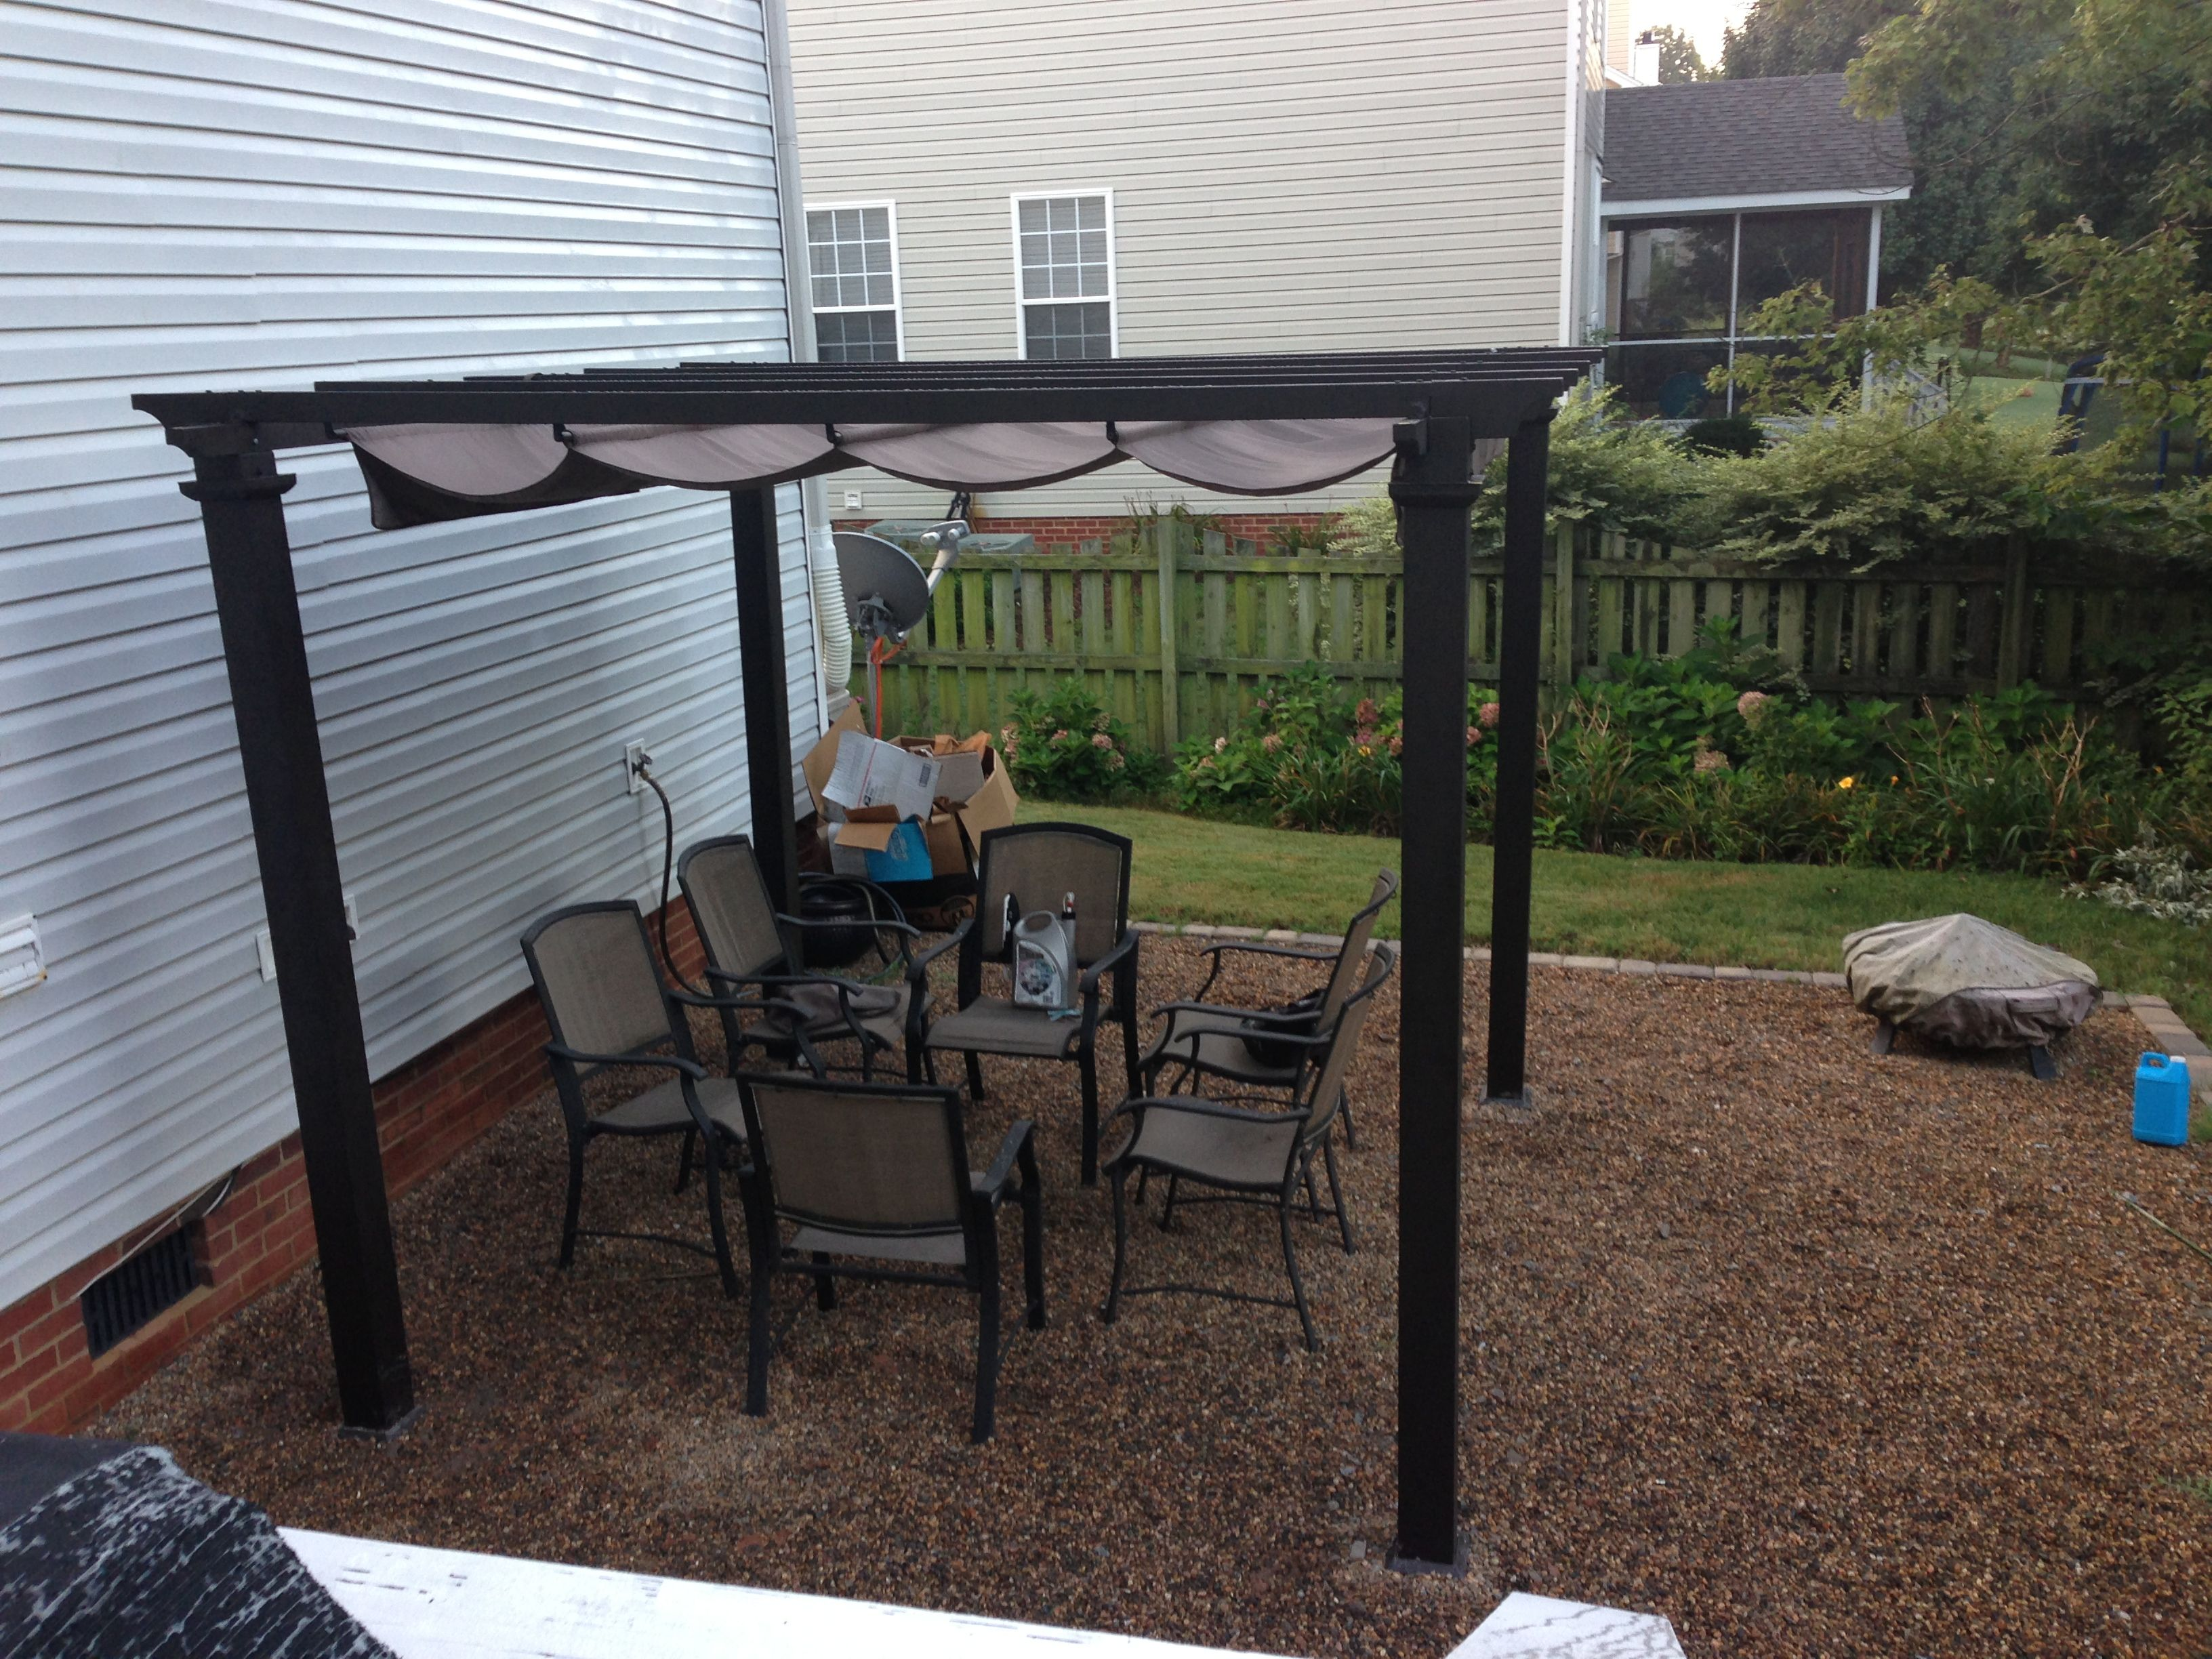 Pergola from Home Depot anchored into concrete pavers buried under